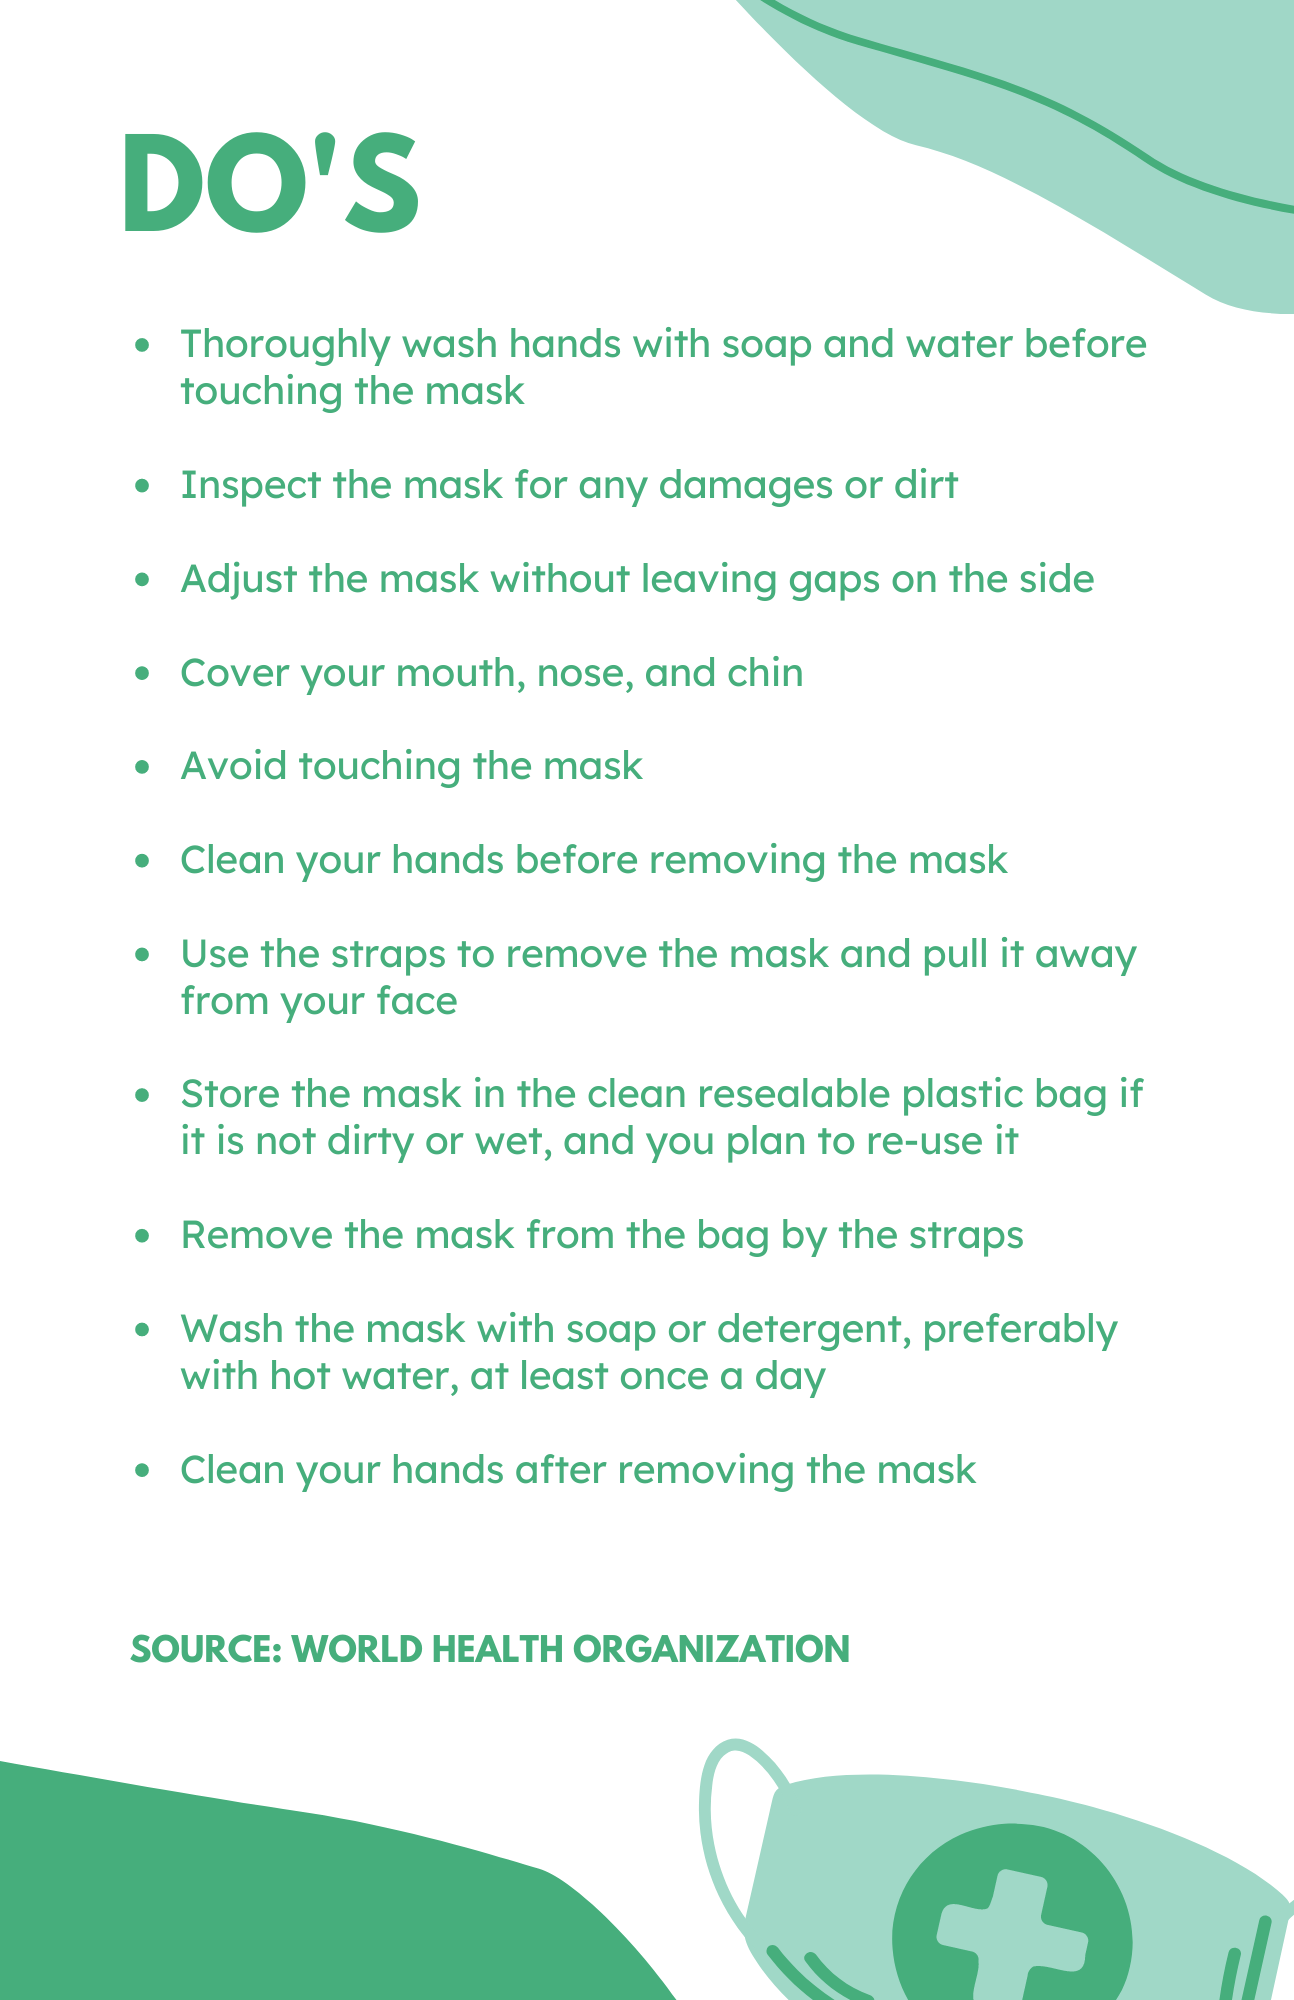 Do's for wearing a mask.